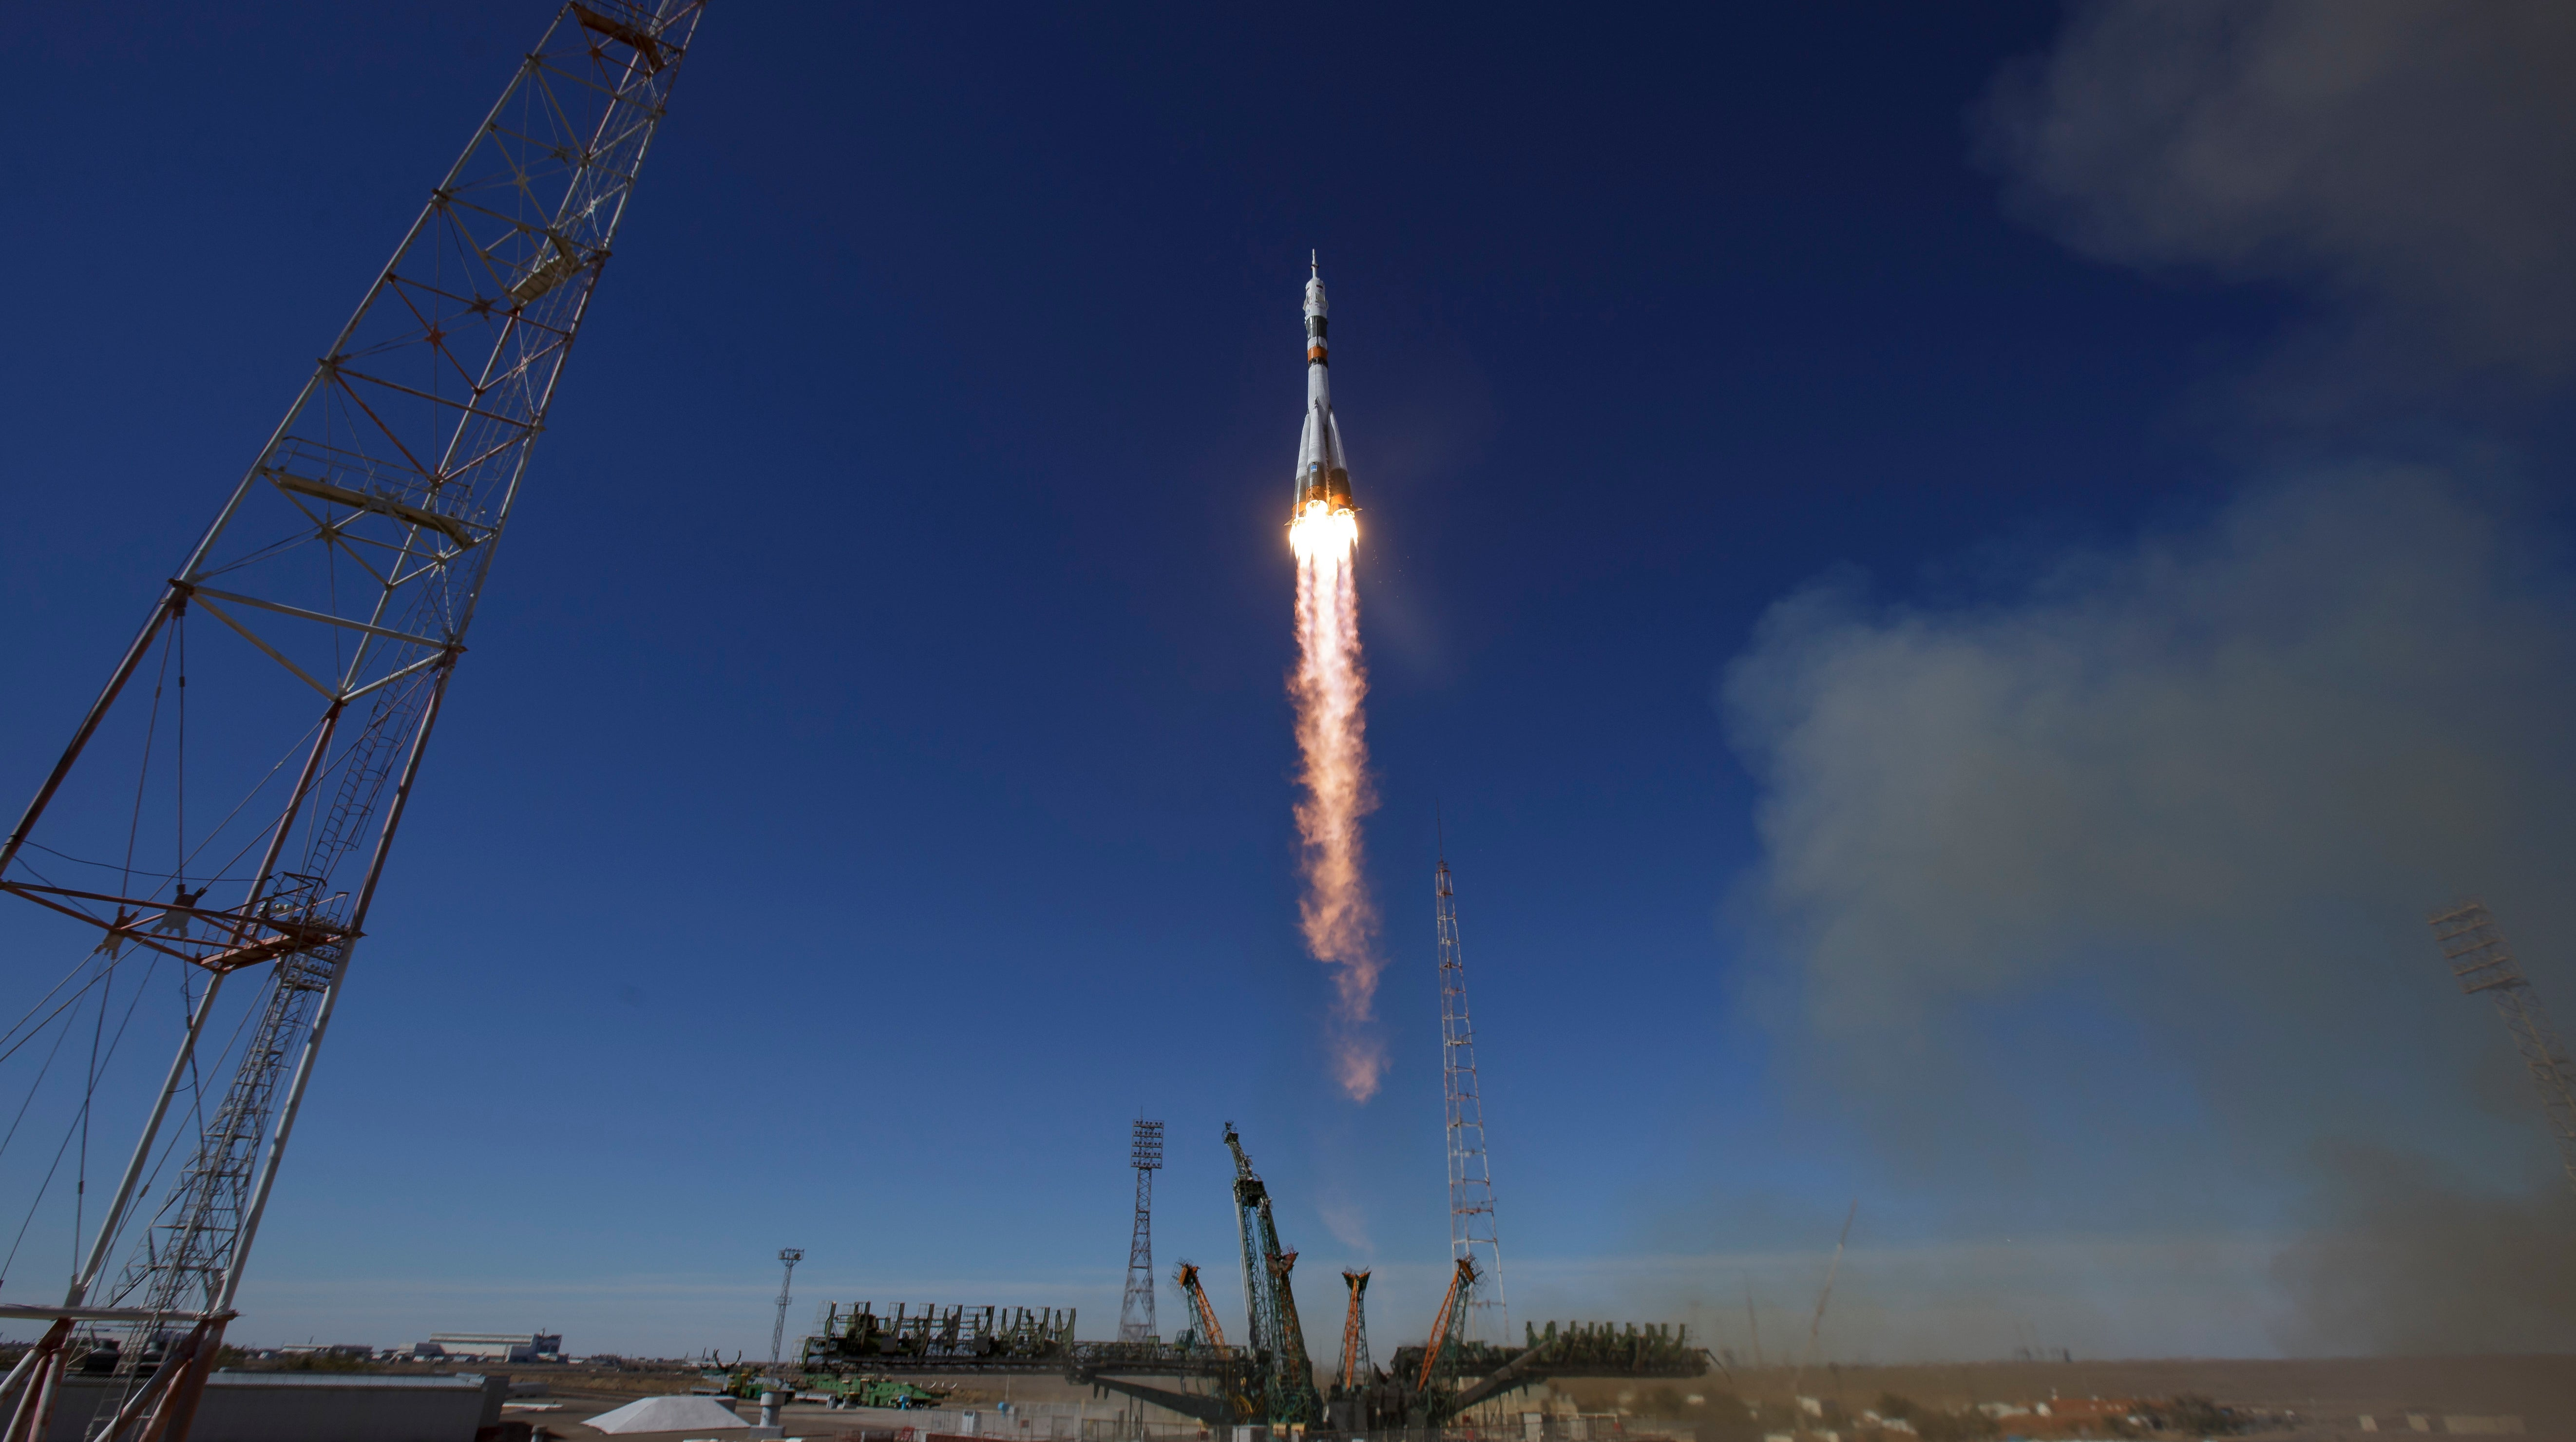 Russian Space Agency Releases Video OfFailed Soyuz Launch